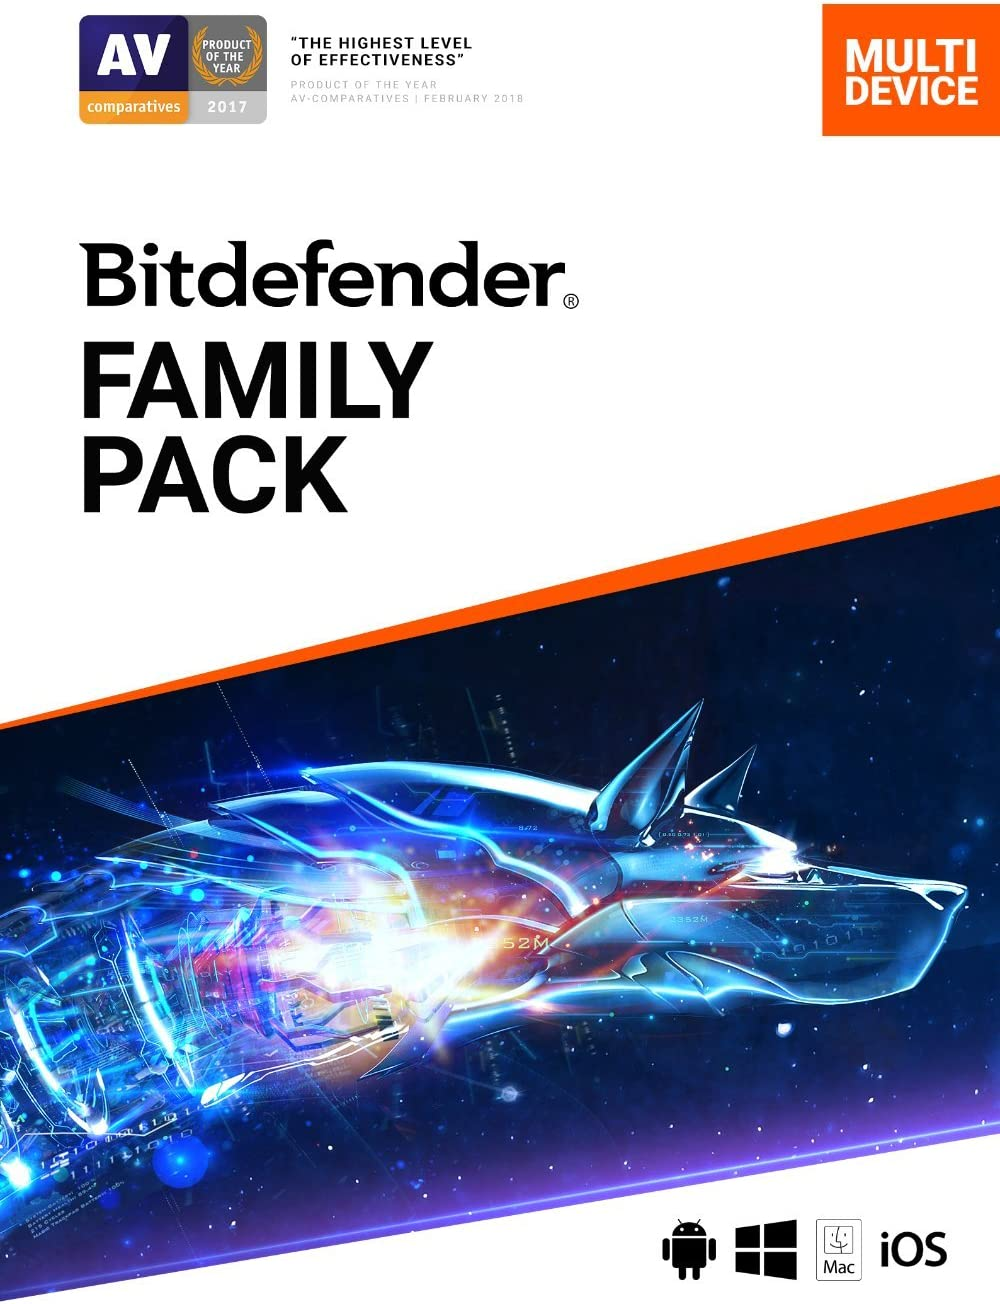 Bitdefender Family Pack - 15 year Devices Max 49% OFF Minneapolis Mall PC Subscription 2